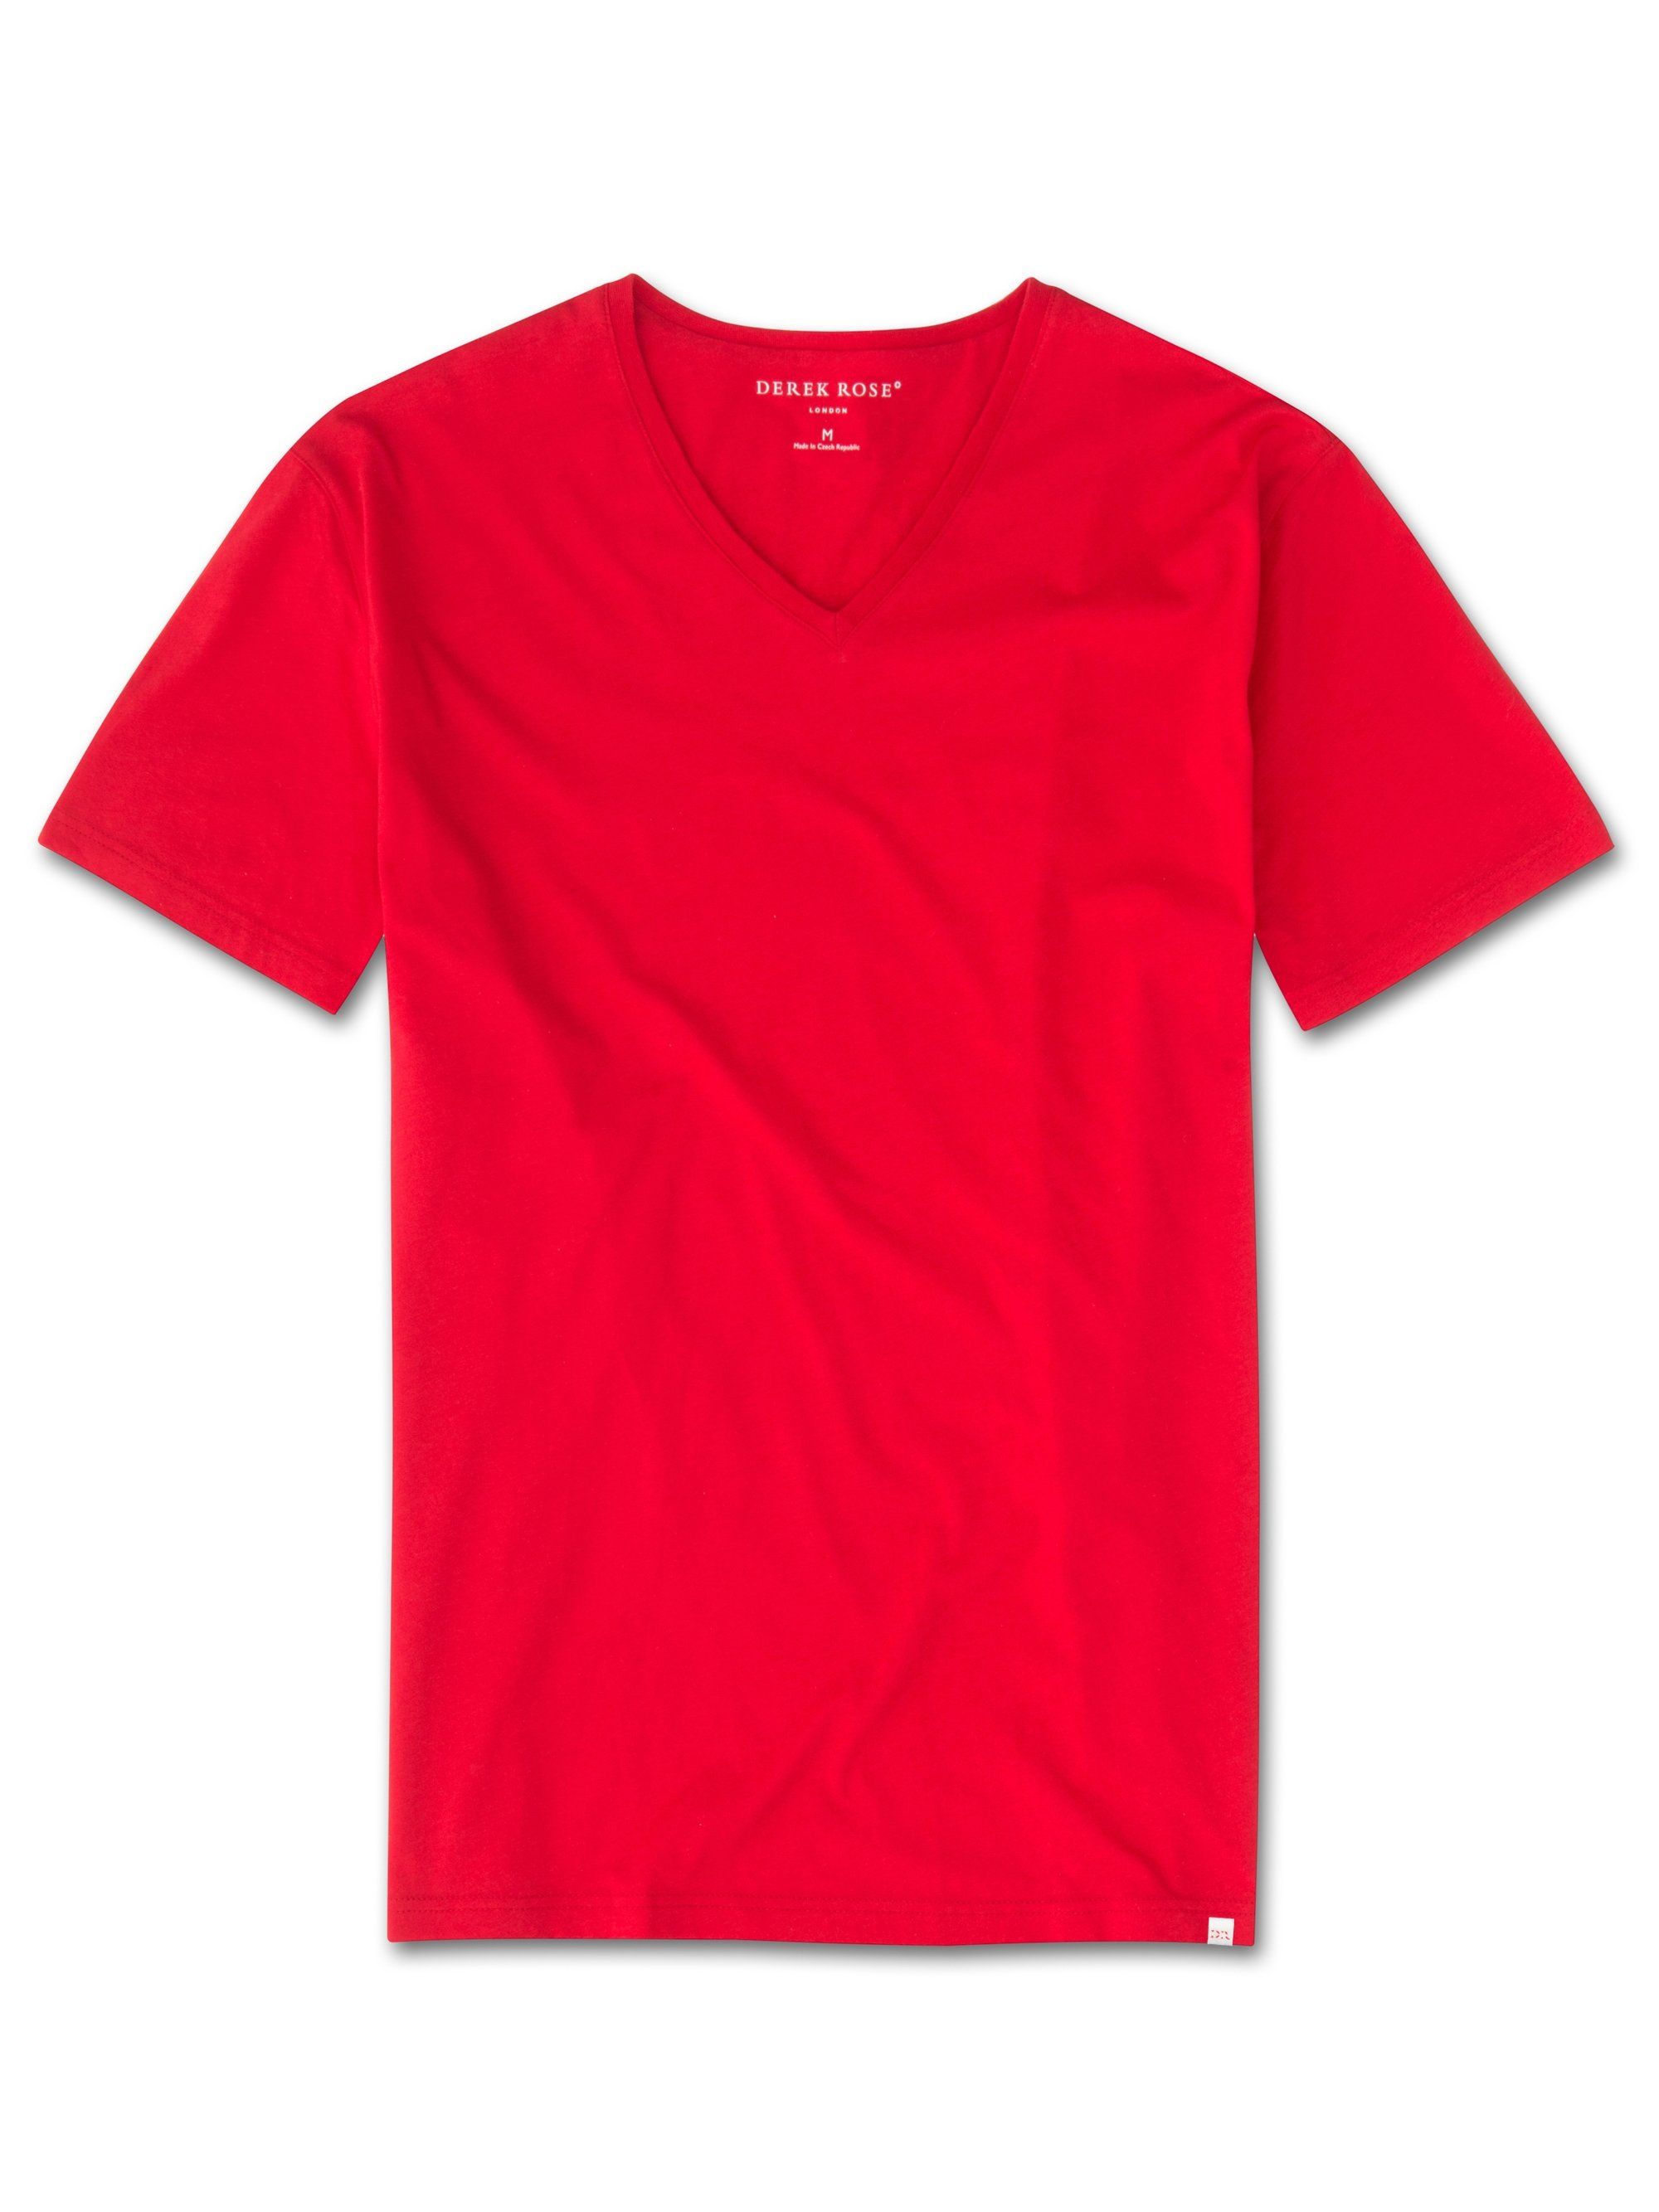 Men's Short Sleeve V-Neck T-Shirt Riley 2 Pima Cotton Red